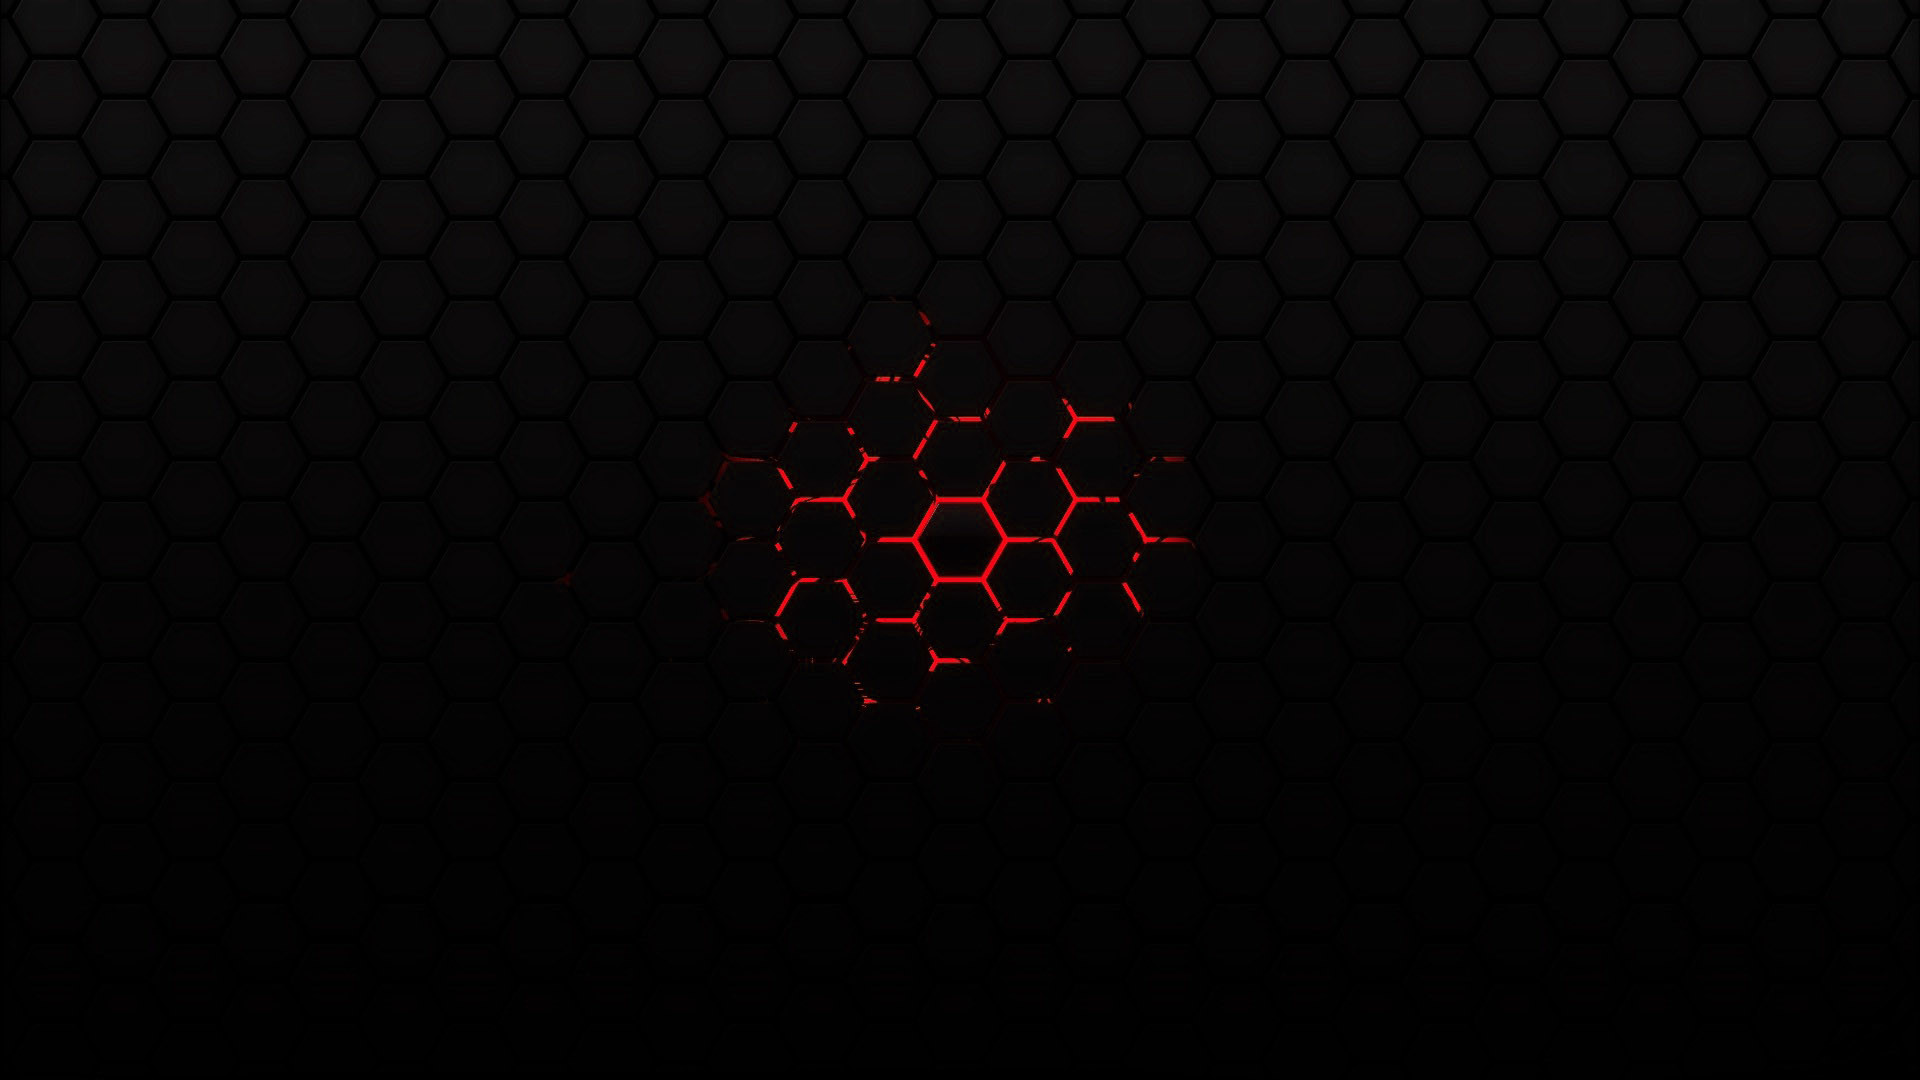 Red 3d Wallpaper 74 Images